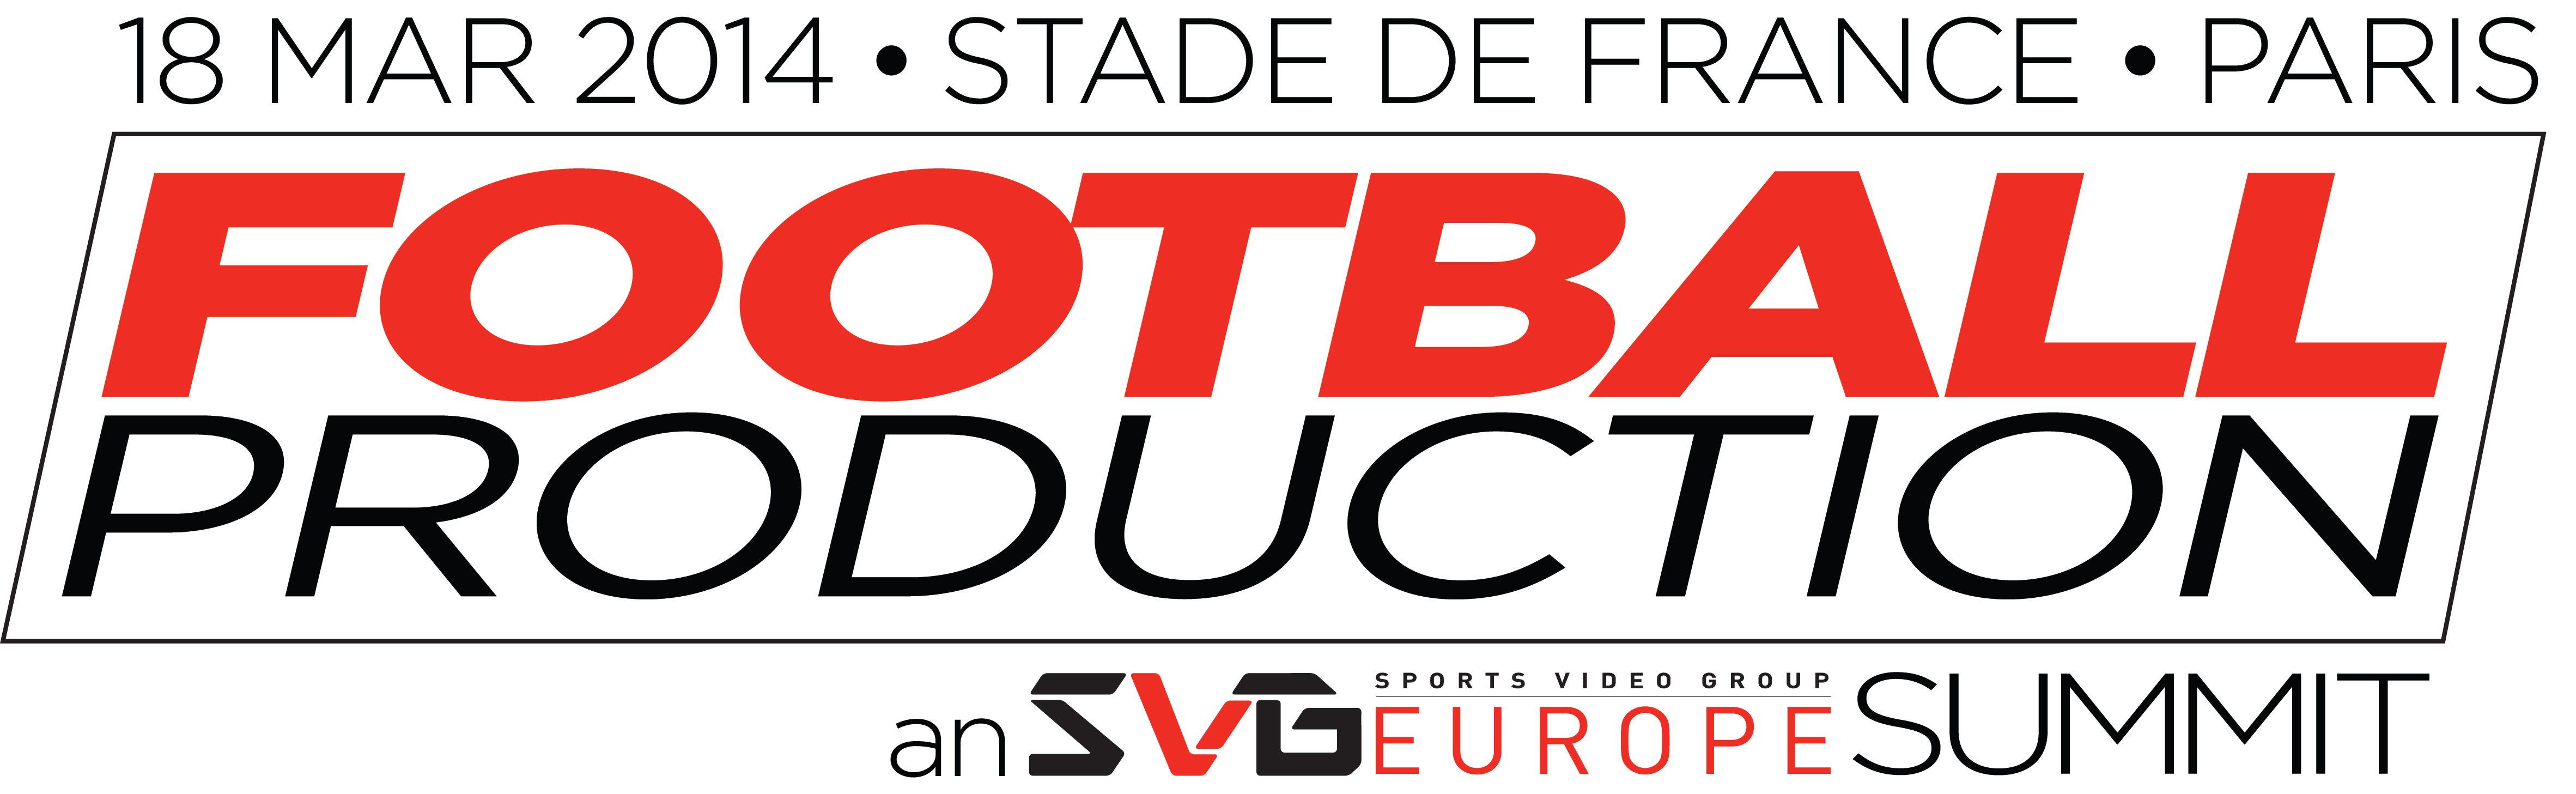 AJA Exhibits at the SVG Europe Football Production Summit, France